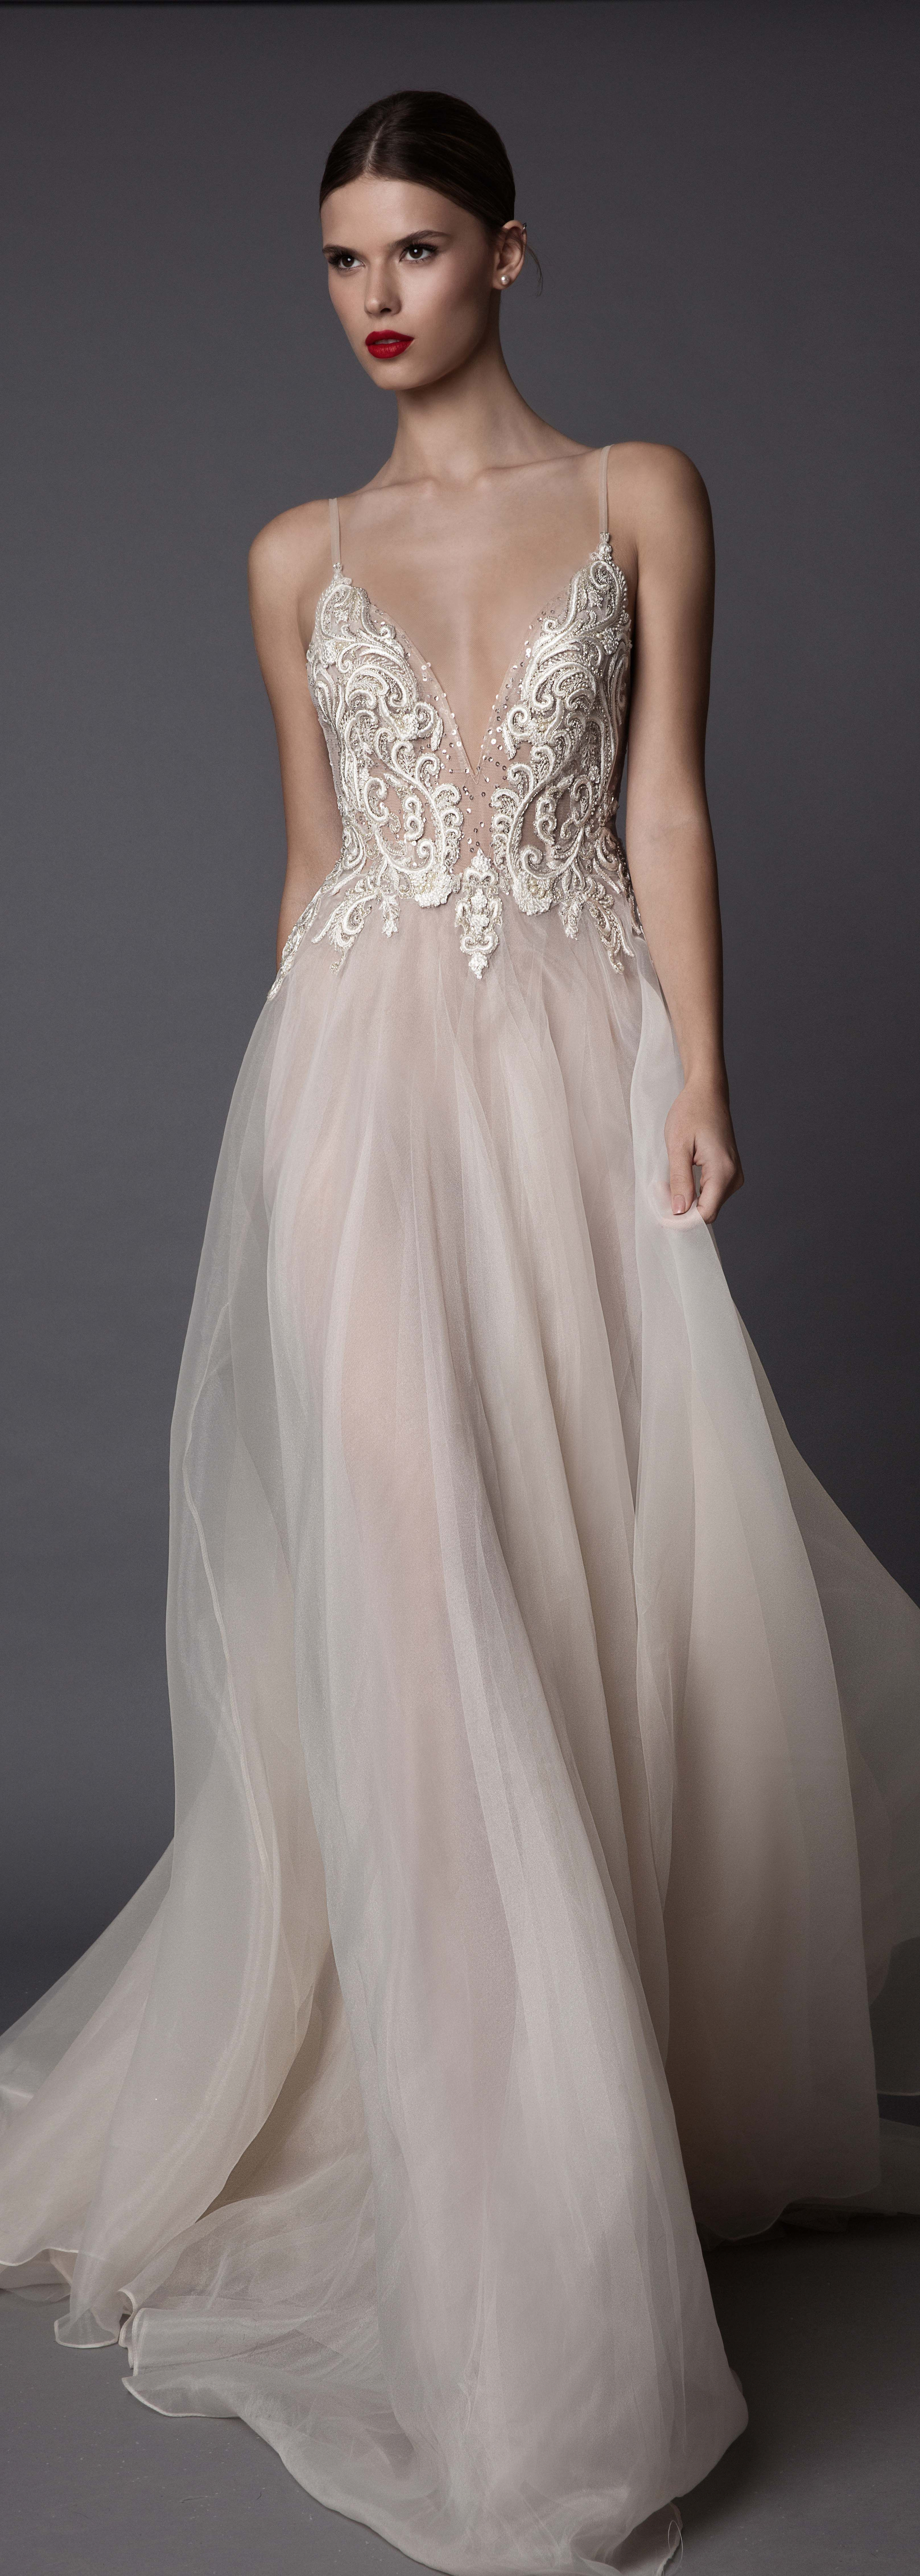 Low cut wedding dresses  Too low cut for a wedding but pretty  You would think Ium getting